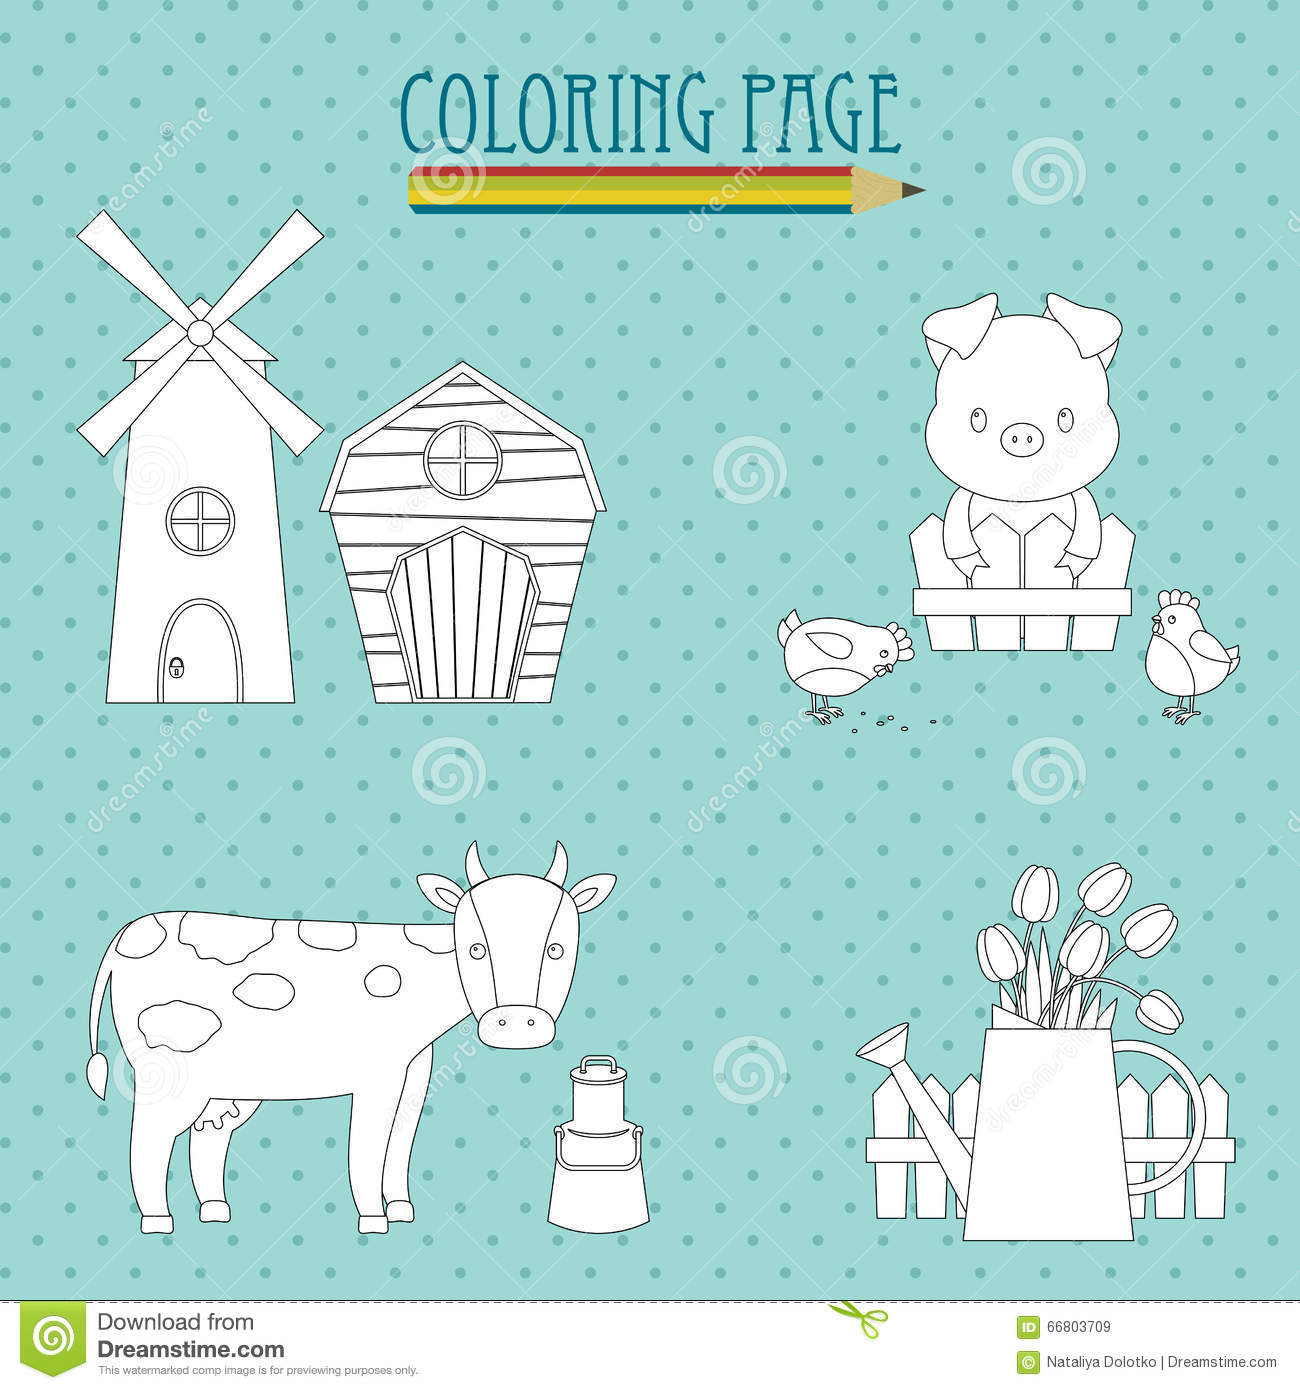 Coloring page. Farm stock vector. Illustration of farm - 66803709